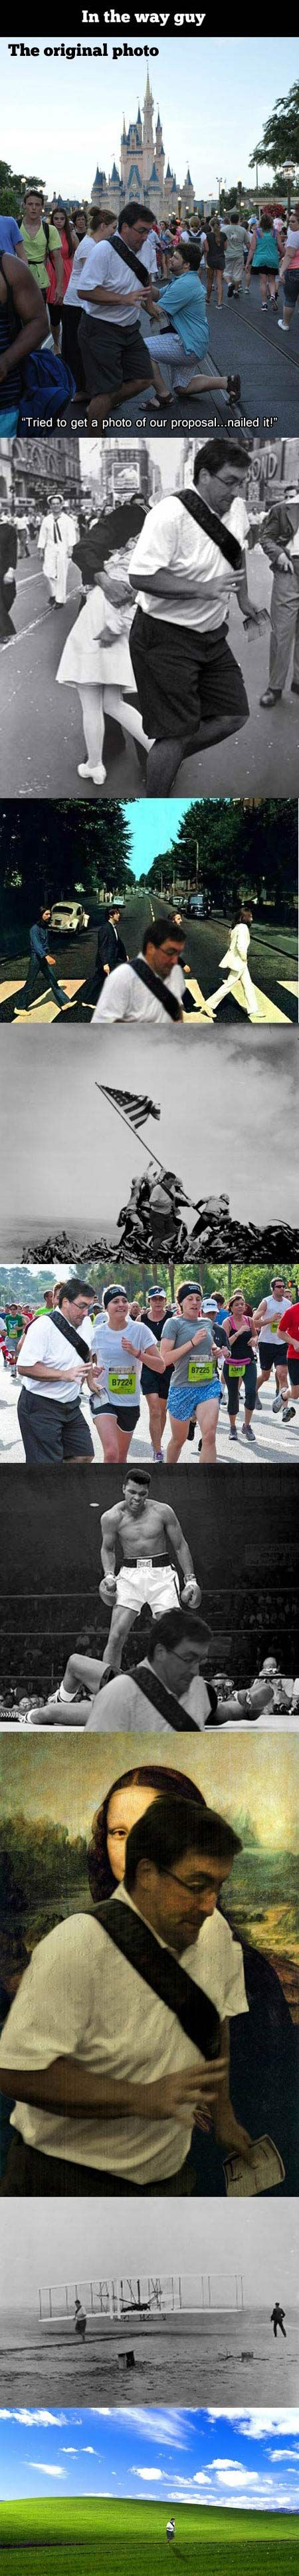 """""""In the way"""" guy gets in the way of famous photos."""